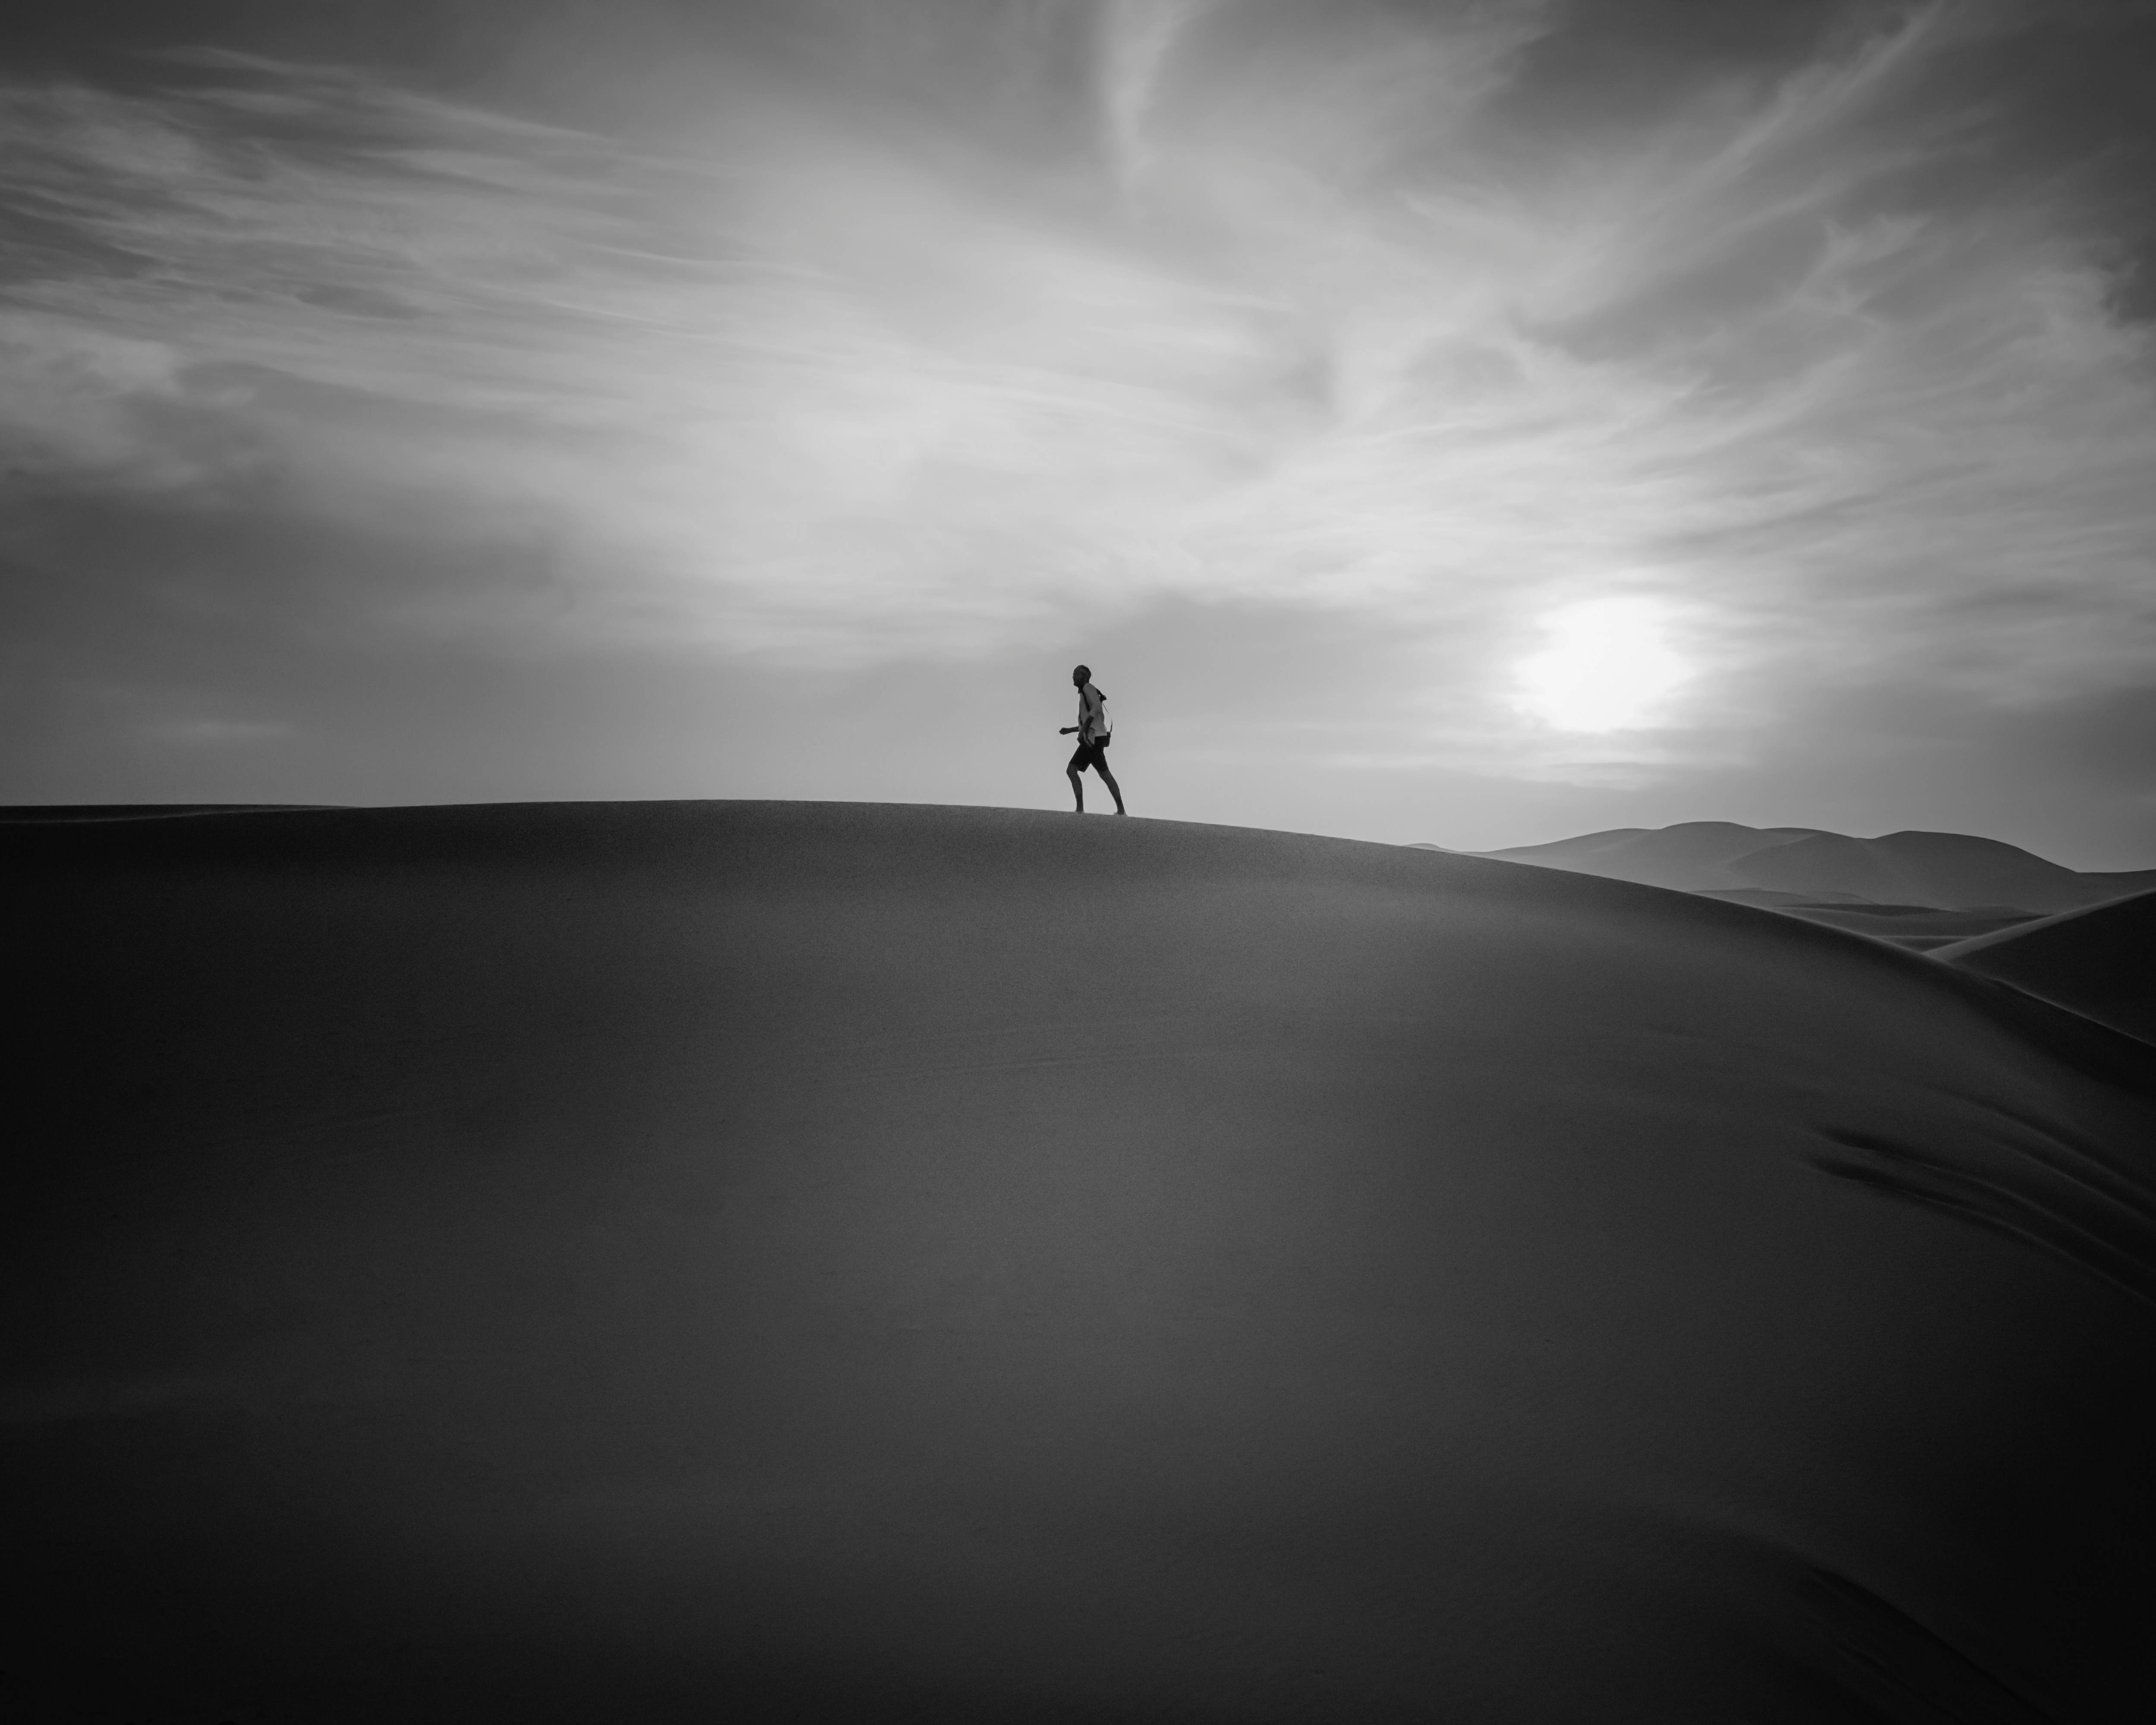 grayscale photography of man running on desert field during daytime